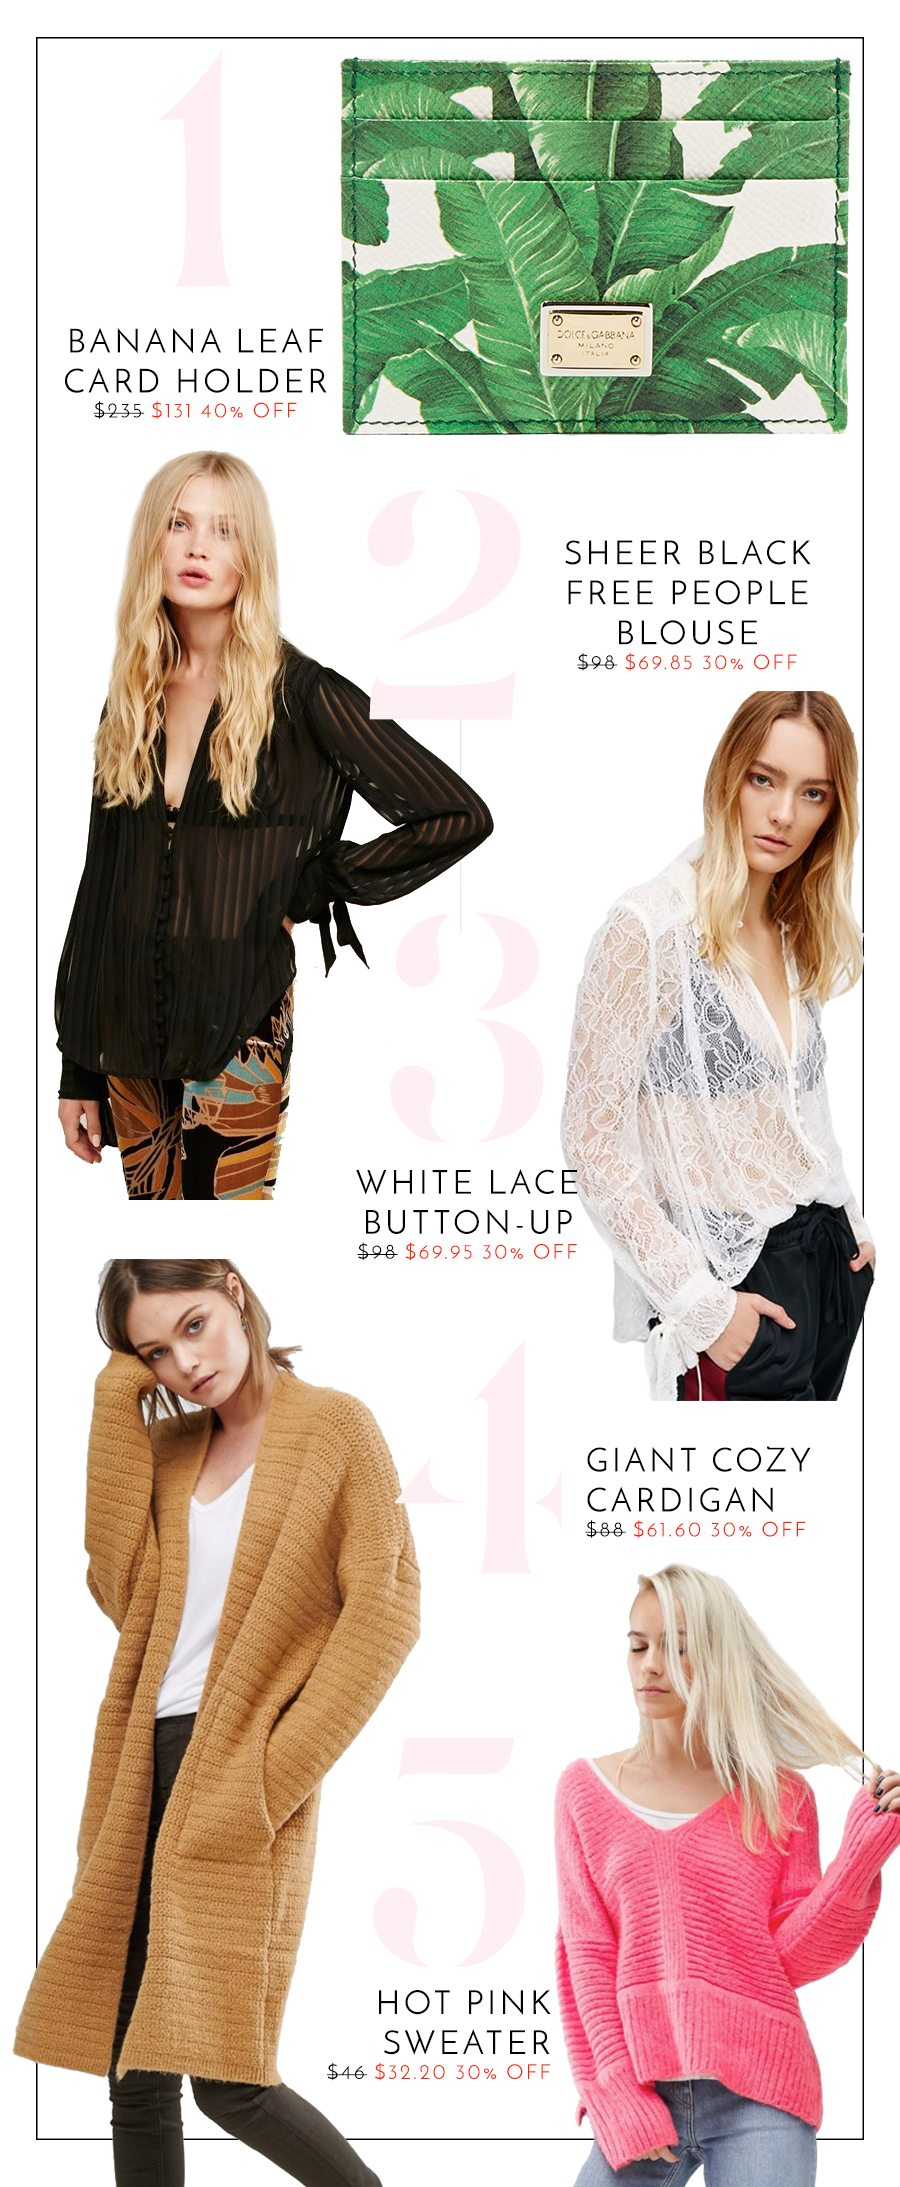 CYBER MONDAY STEALS I'M SERIOUSLY LOVING